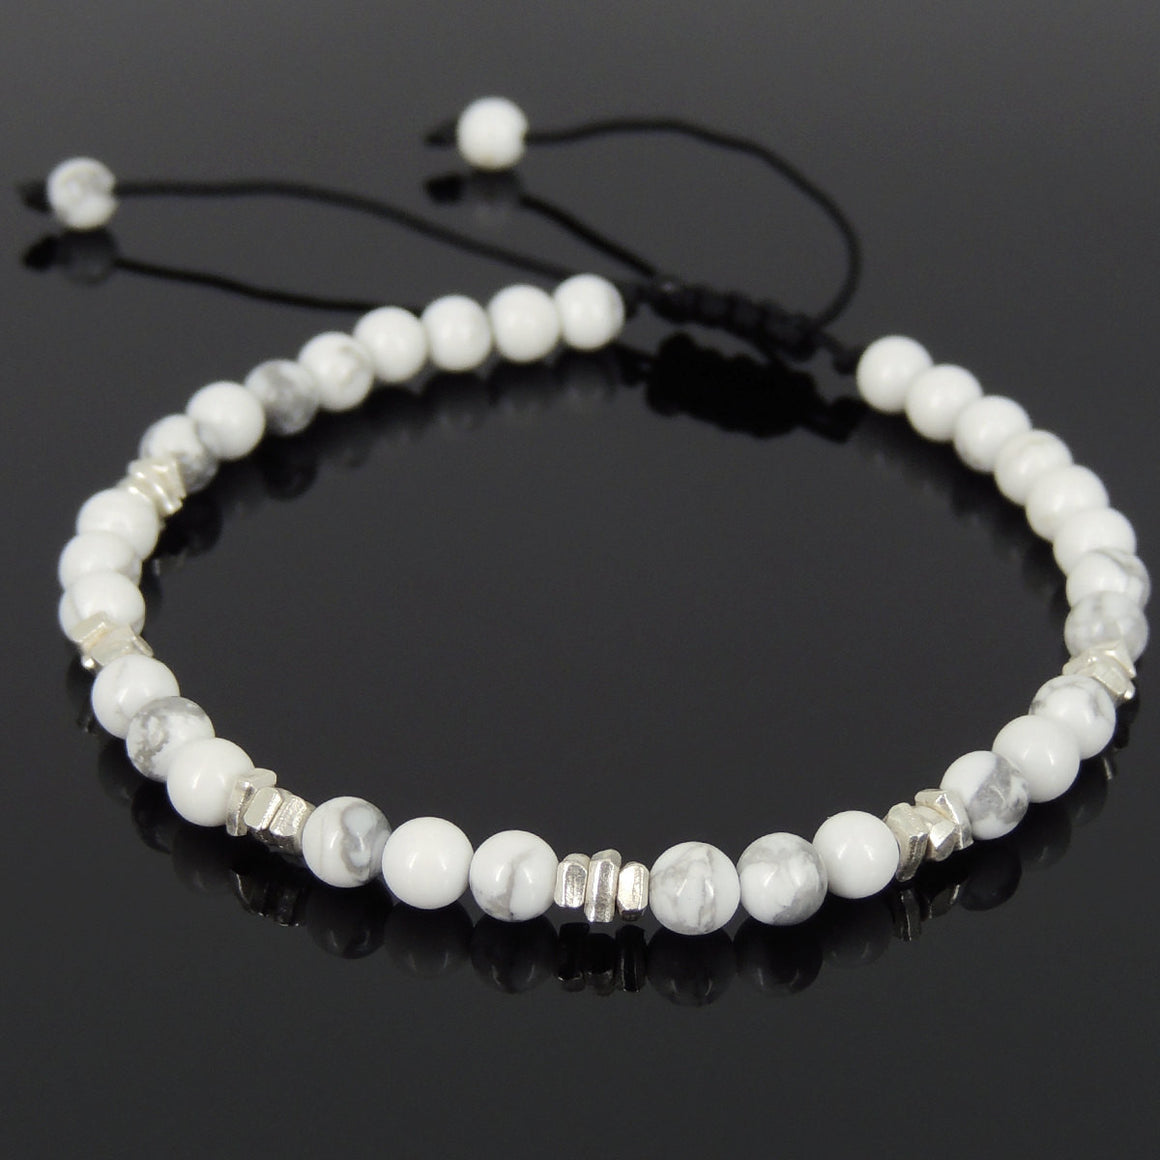 4mm White Howlite Adjustable Braided Gemstone Bracelet with S925 Sterling Silver Nugget Beads  - Handmade by Gem & Silver BR952